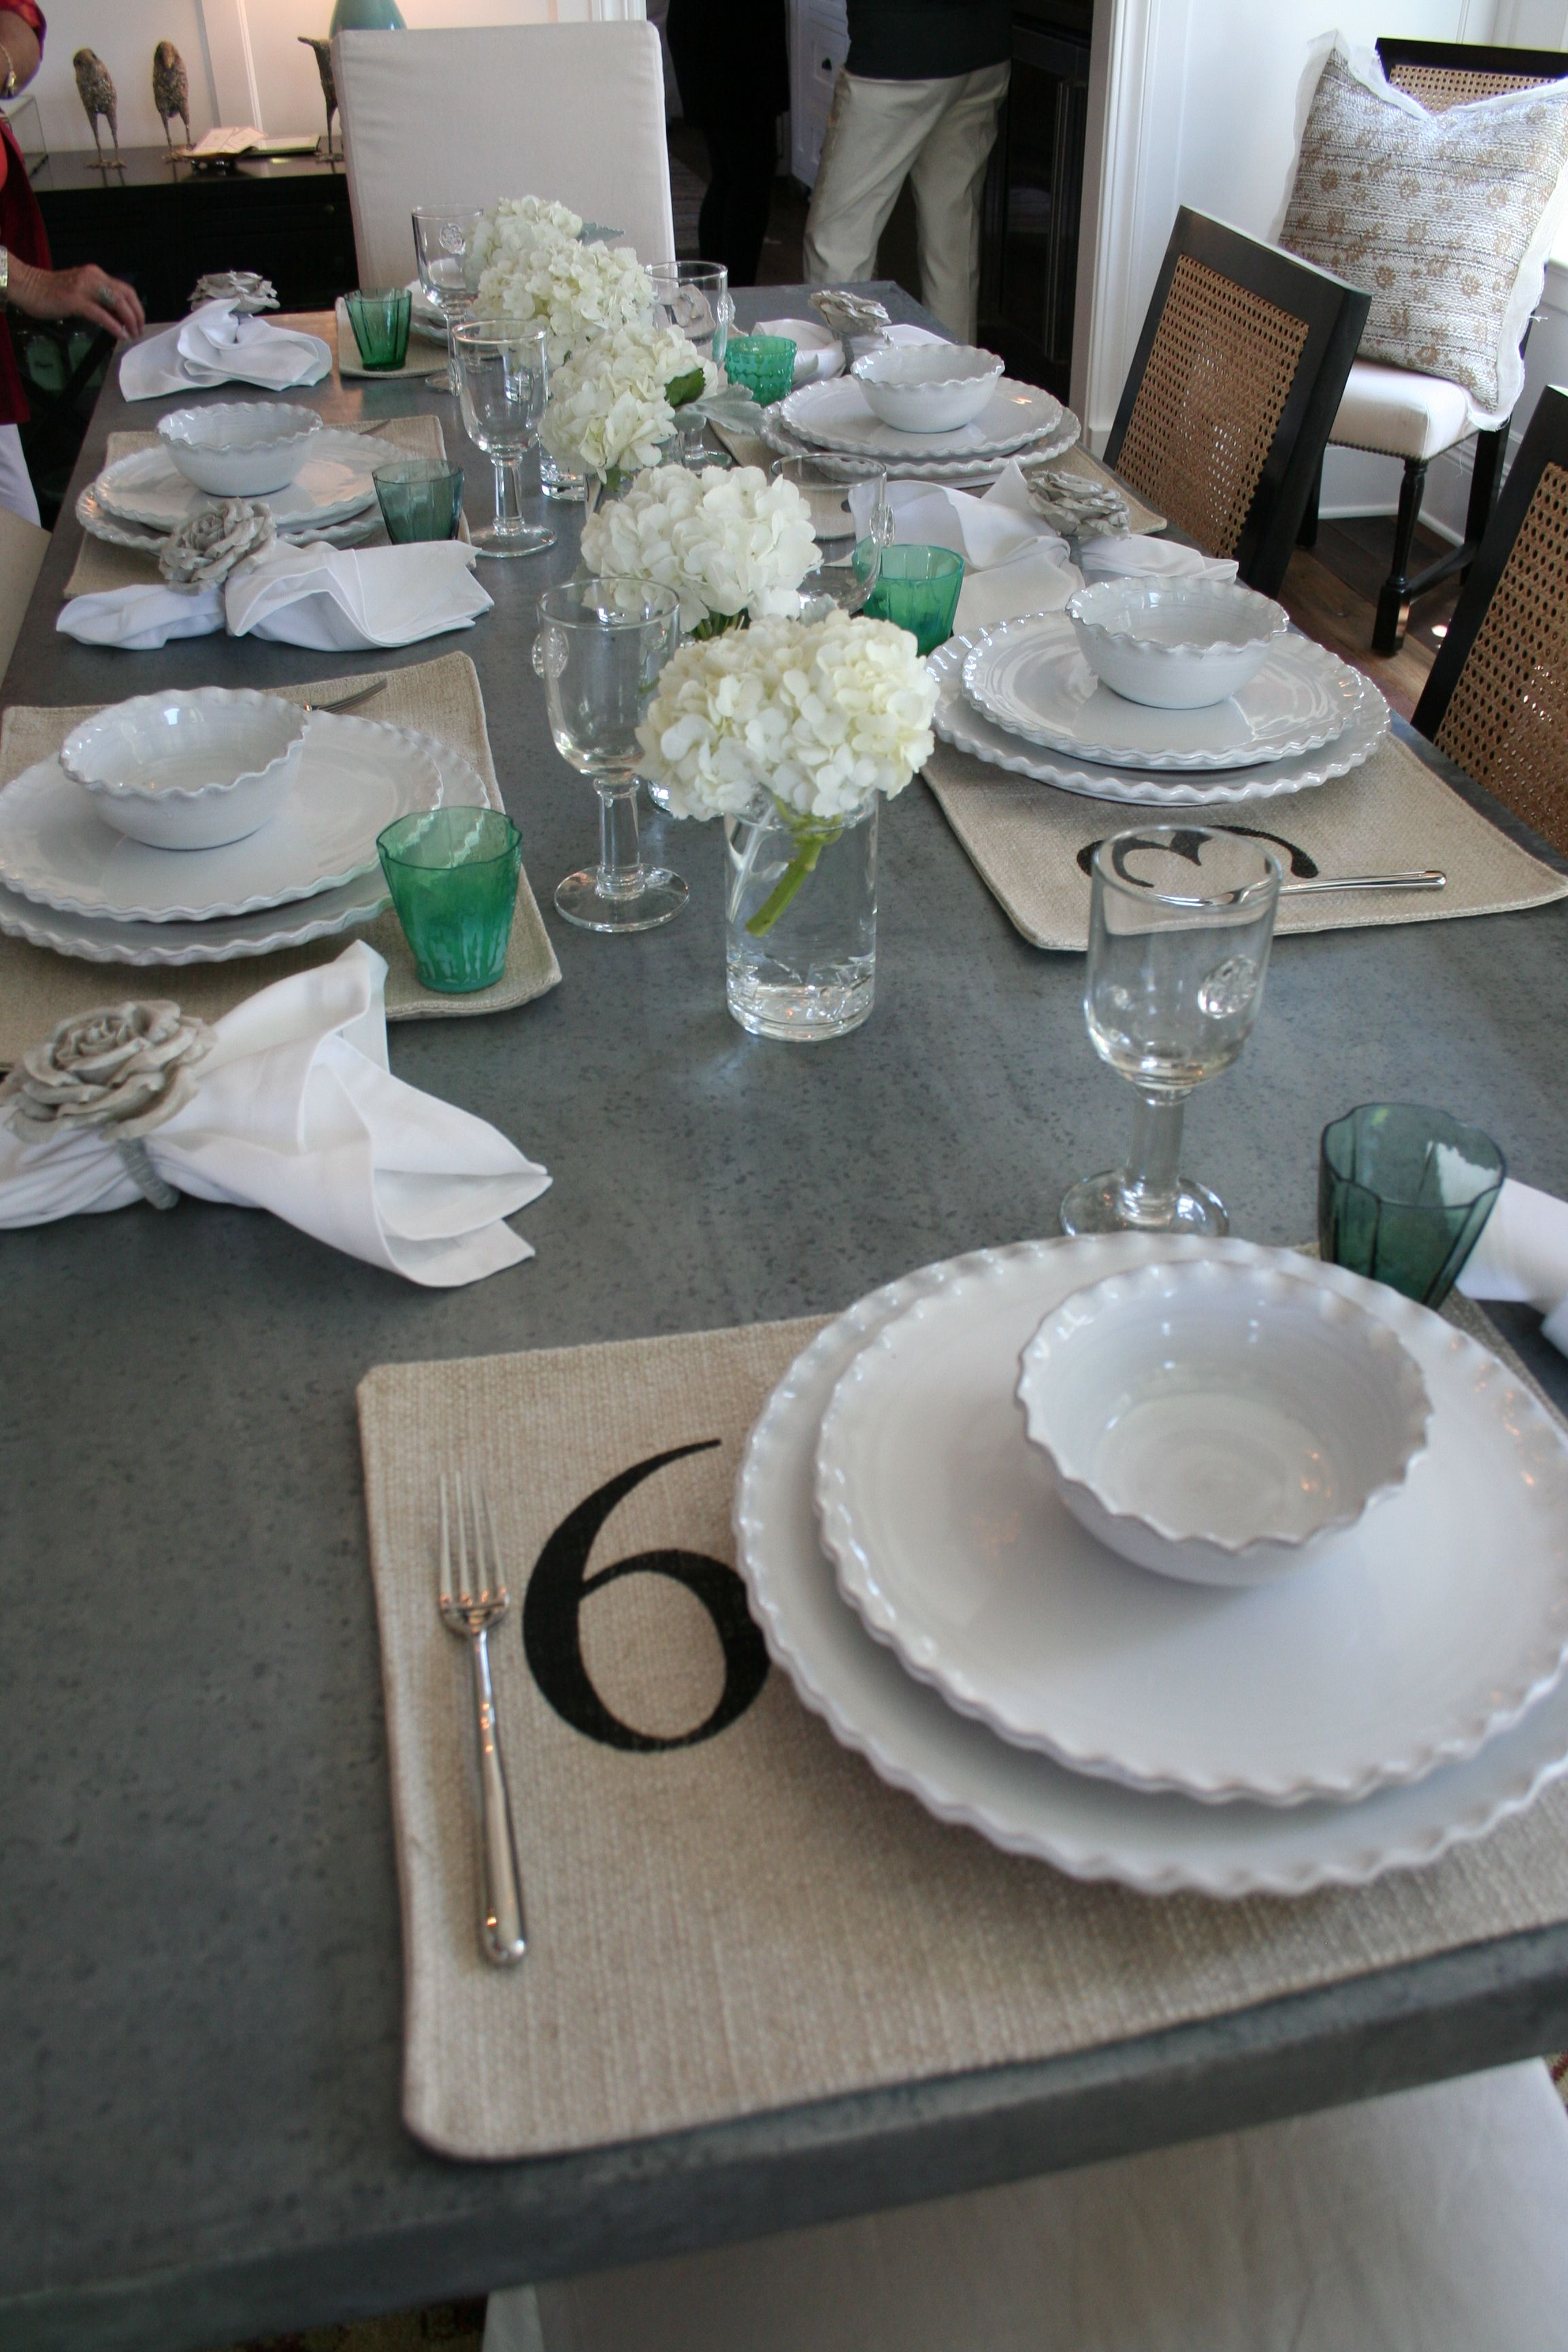 Beachy Casual Table Setting   Green Accents Are Cute For St Patricku0027s Day